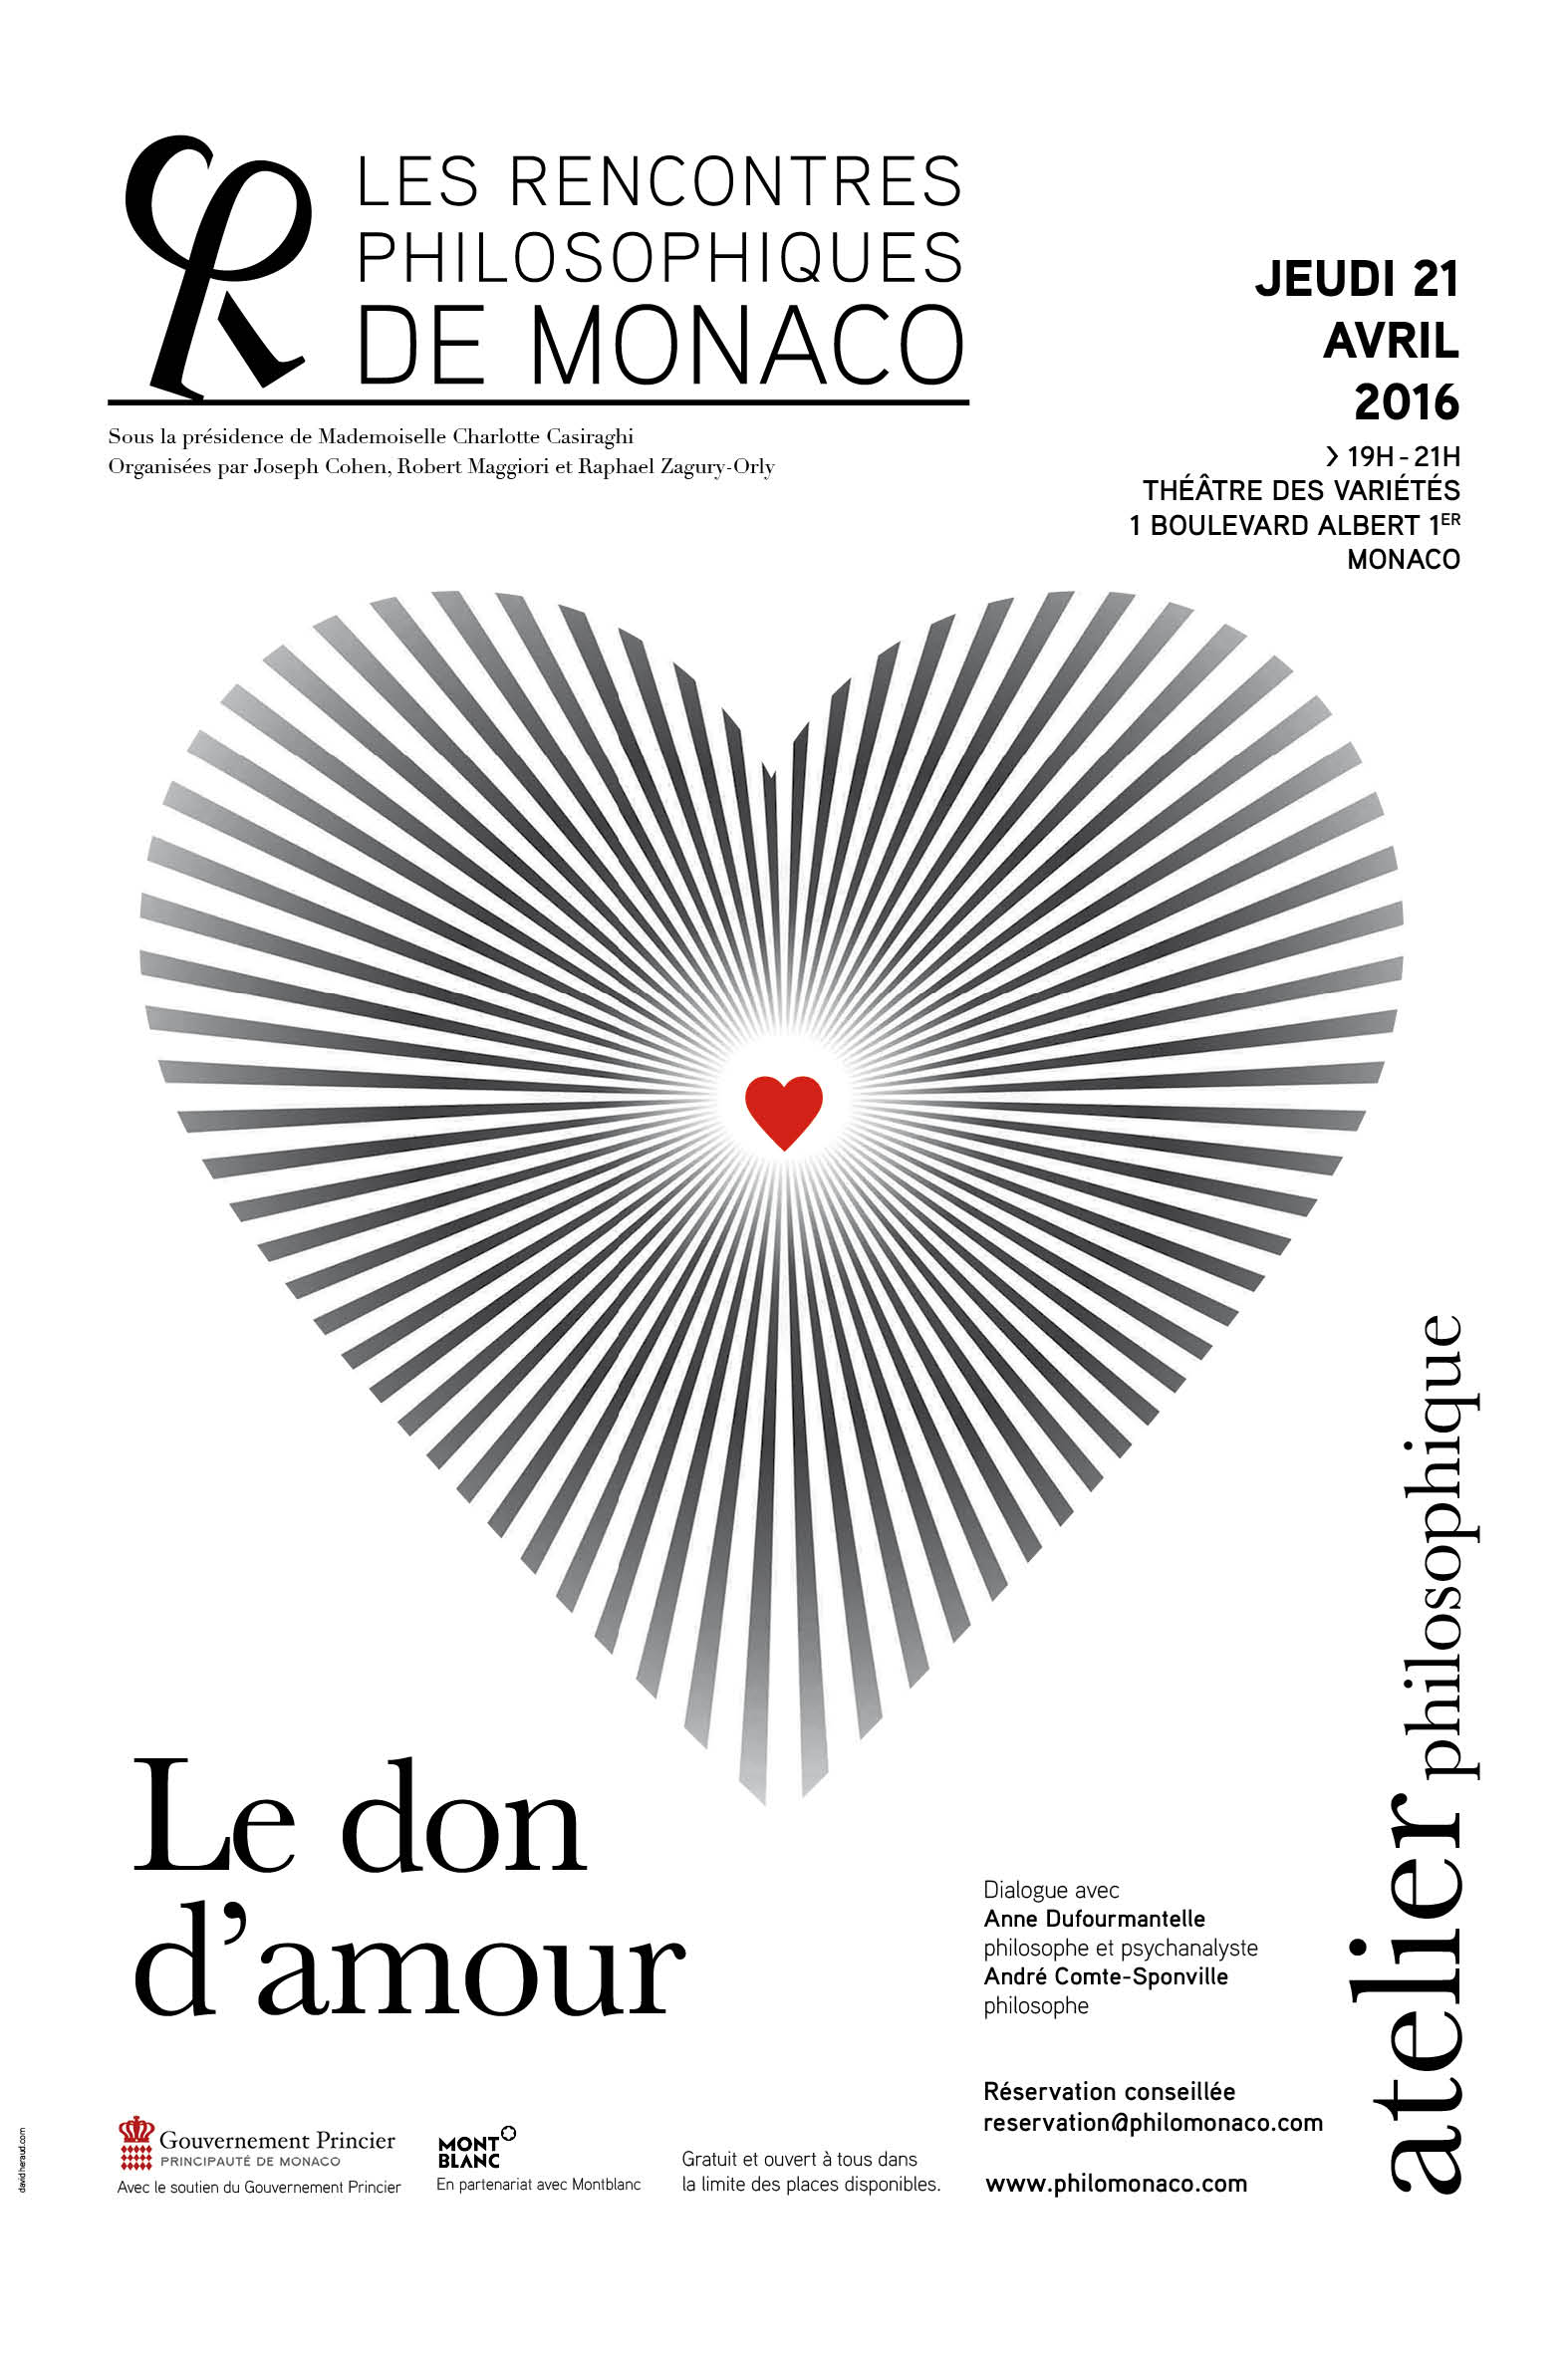 1206, 1206, Affiche DON, Affiche-DON-.jpg, 326667, http://philomonaco.com/wp-content/uploads/2017/02/Affiche-DON-.jpg, http://philomonaco.com/atelier/le-don-damour/affiche-don/, , 2, , , affiche-don, inherit, 1205, 2017-02-20 17:02:14, 2017-02-20 17:02:17, 0, image/jpeg, image, jpeg, http://philomonaco.com/wp-includes/images/media/default.png, 1574, 2362, Array